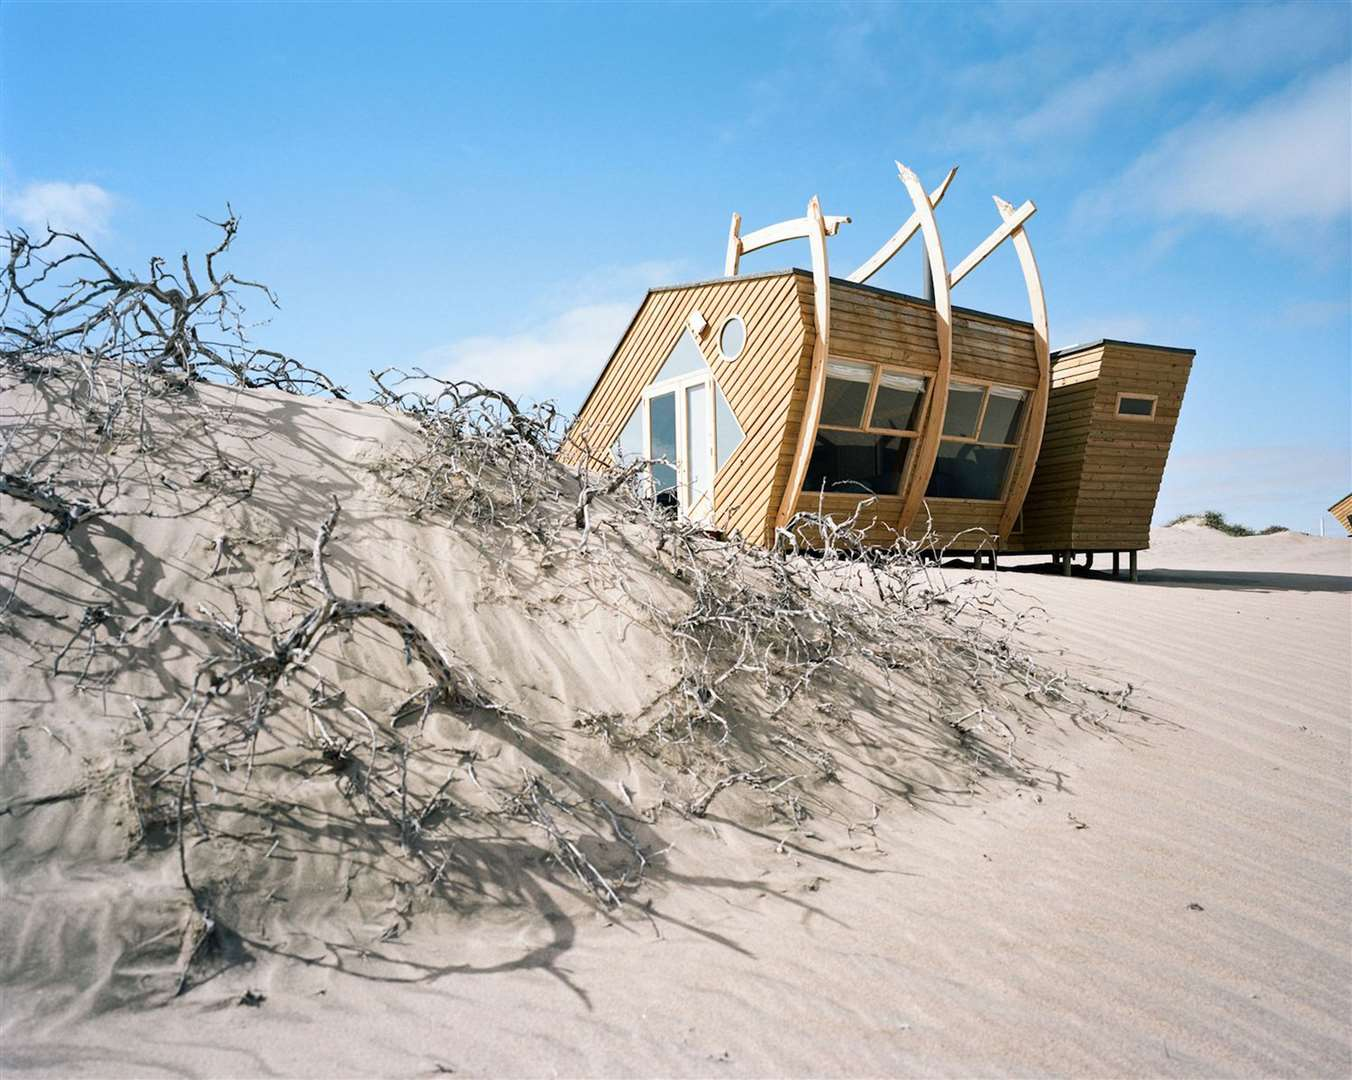 Shipwreck Lodge in the Skeleton Coast National Park in Namibia. Picture: PA Photo/Michael Turek